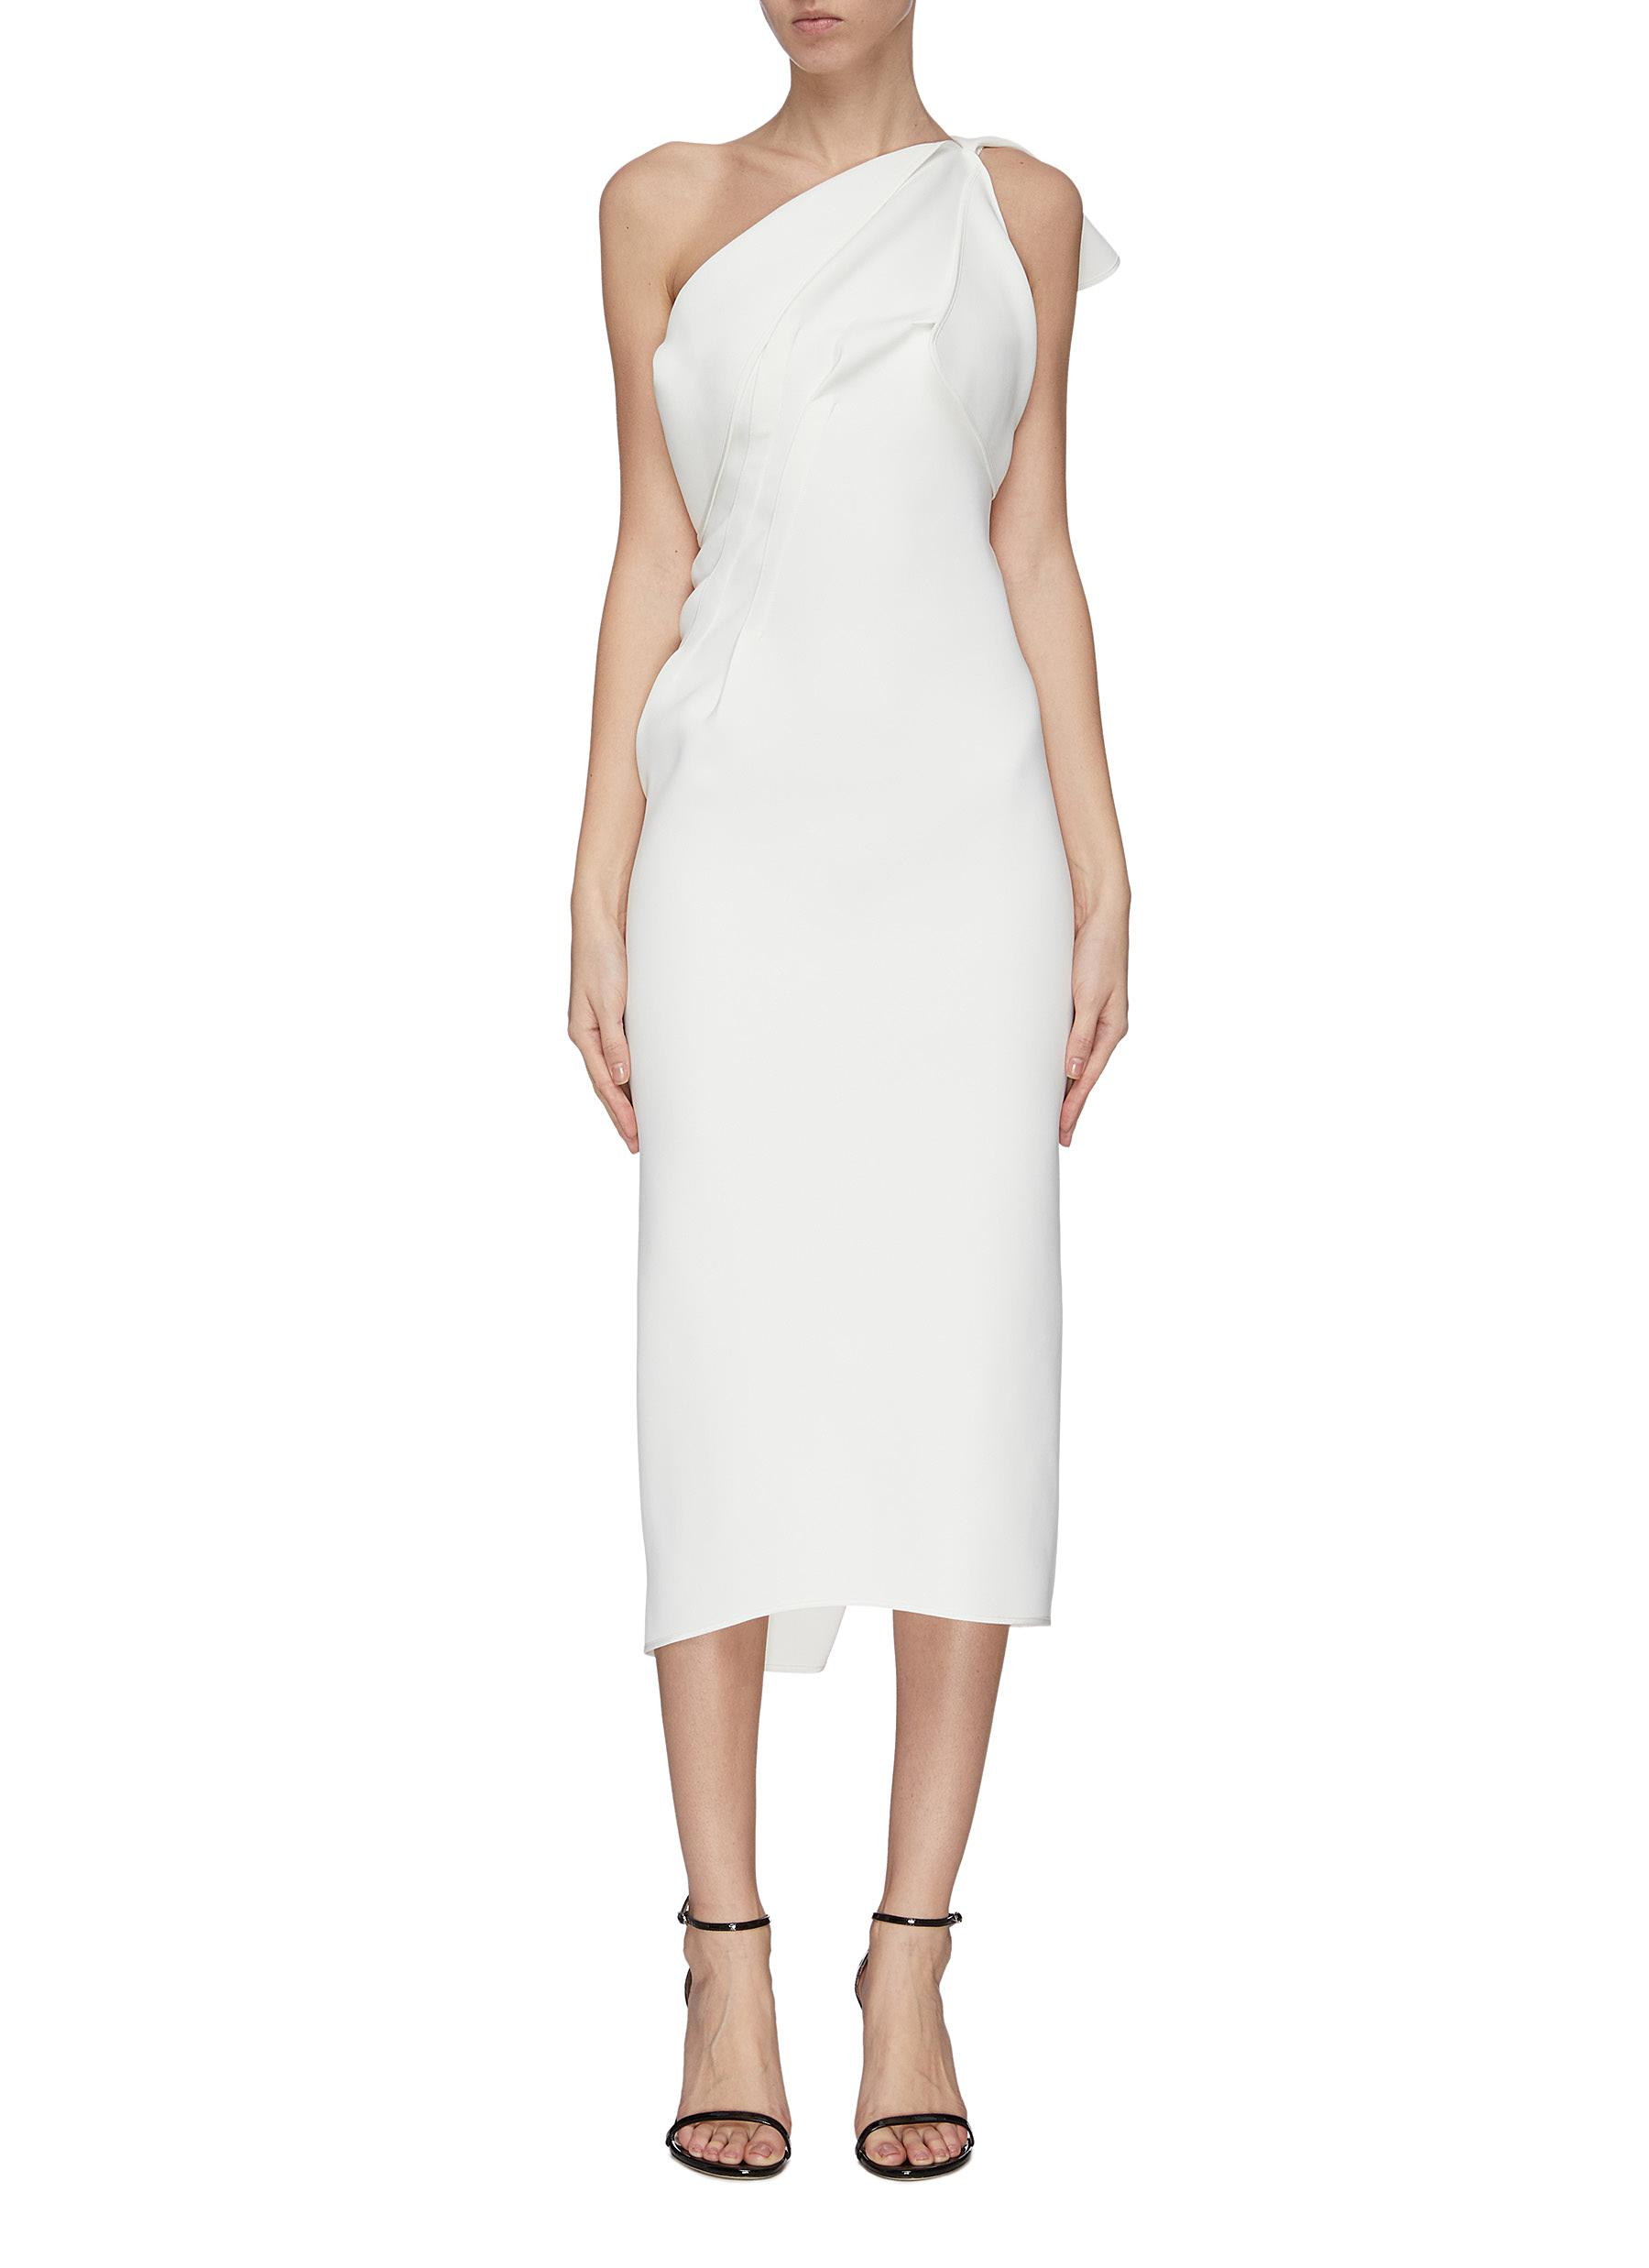 Buy Maticevski Dresses 'Atomised' drape one shoulder midi dress